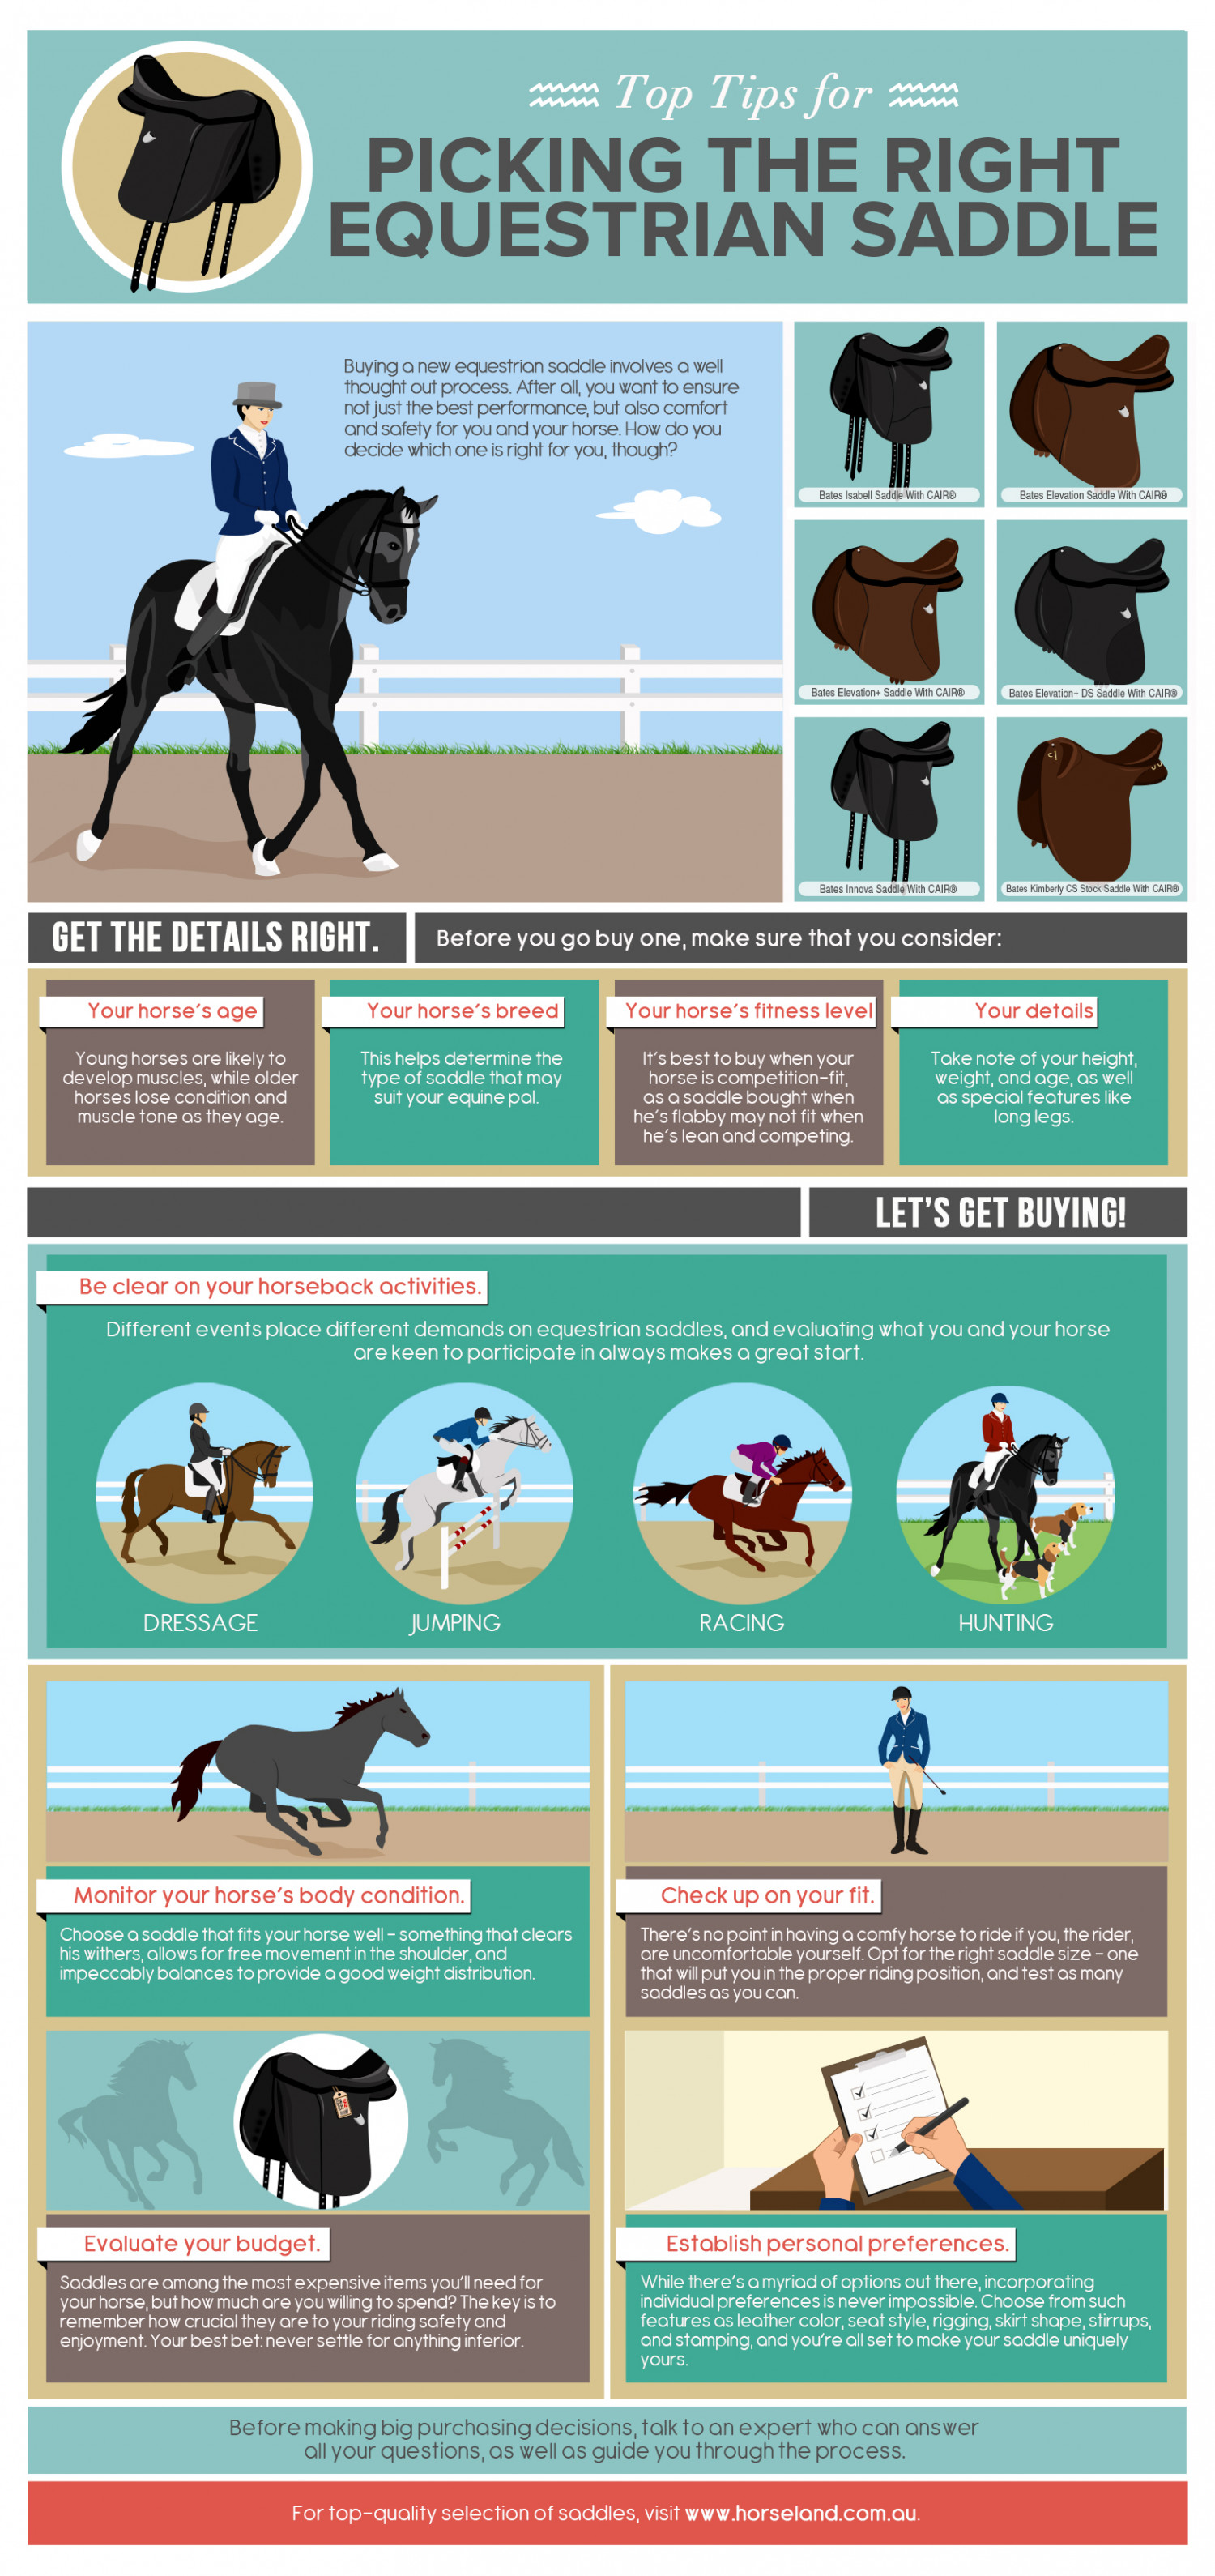 Top Tips for Picking the Right Equestrian Saddle Infographic